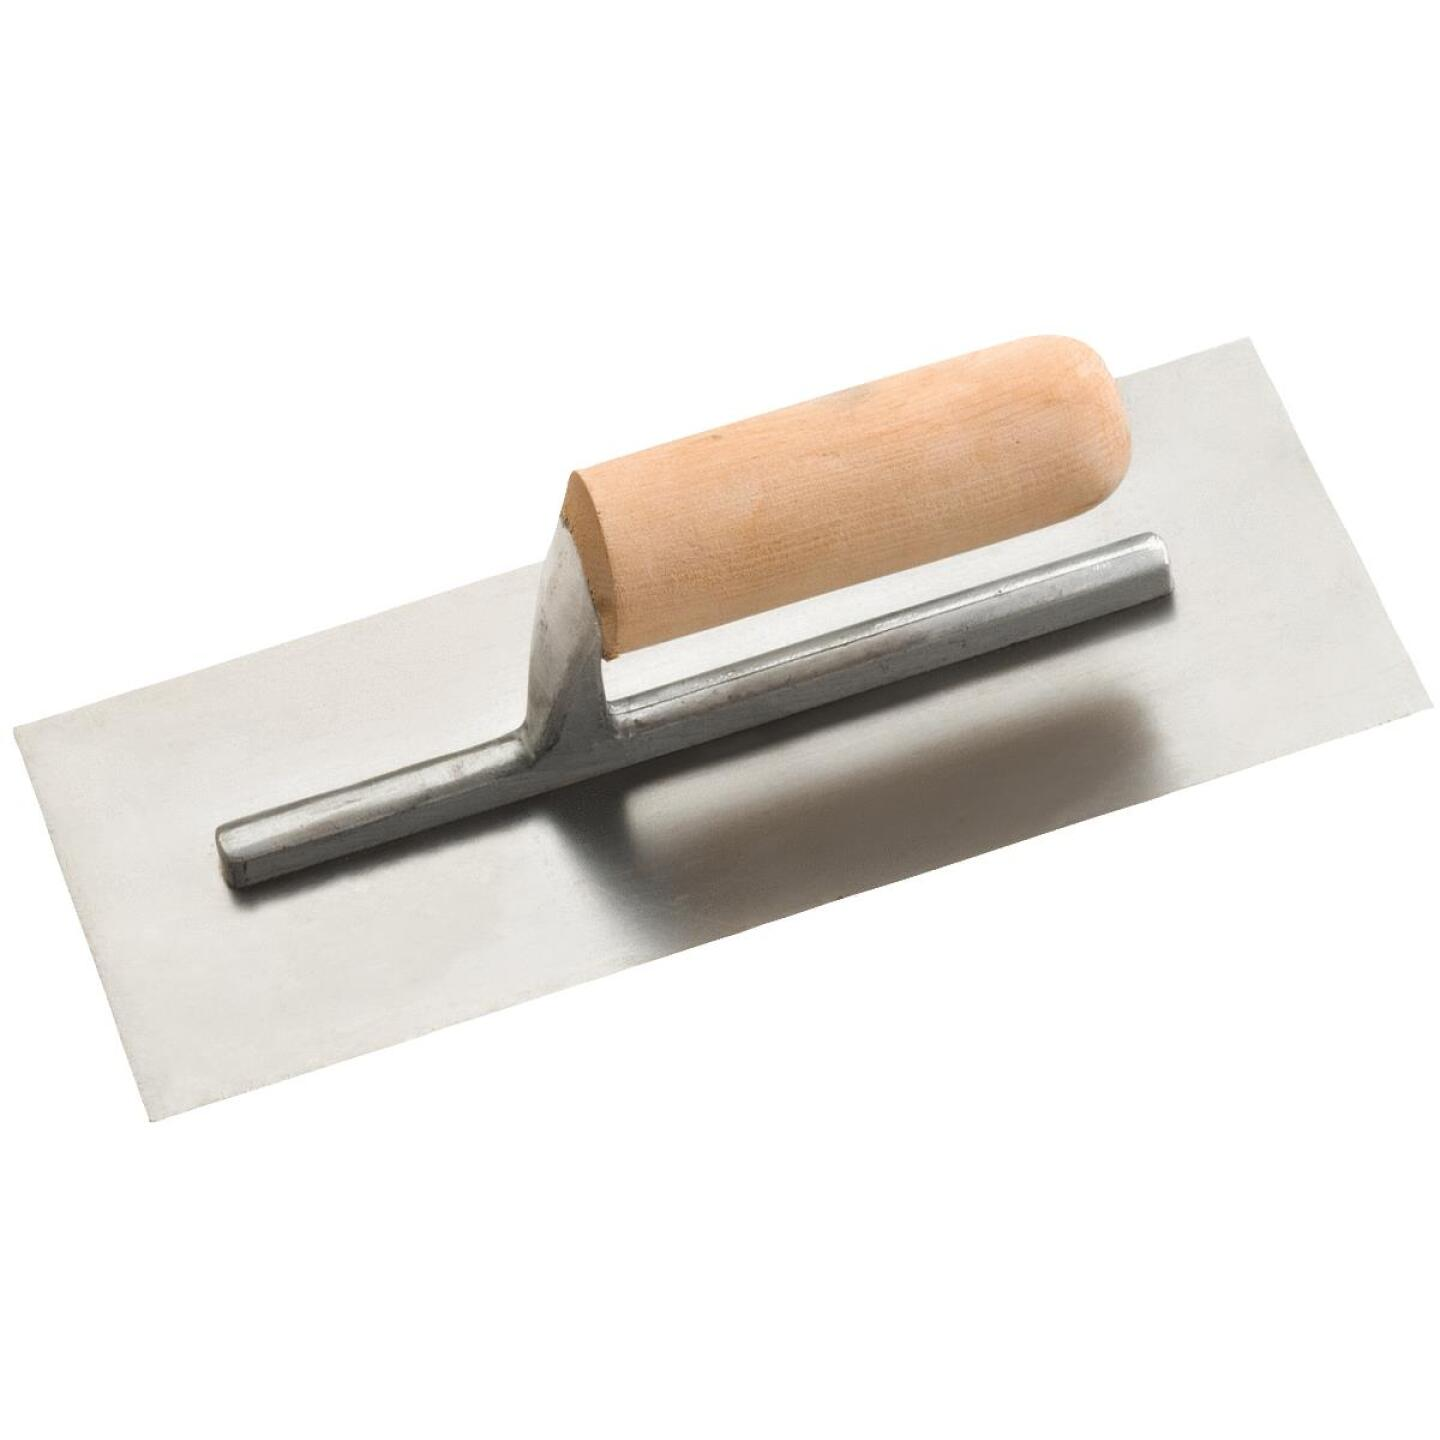 Do it 4-1/2 In. x 11 In. Finishing Trowel with Basswood Handle Image 1